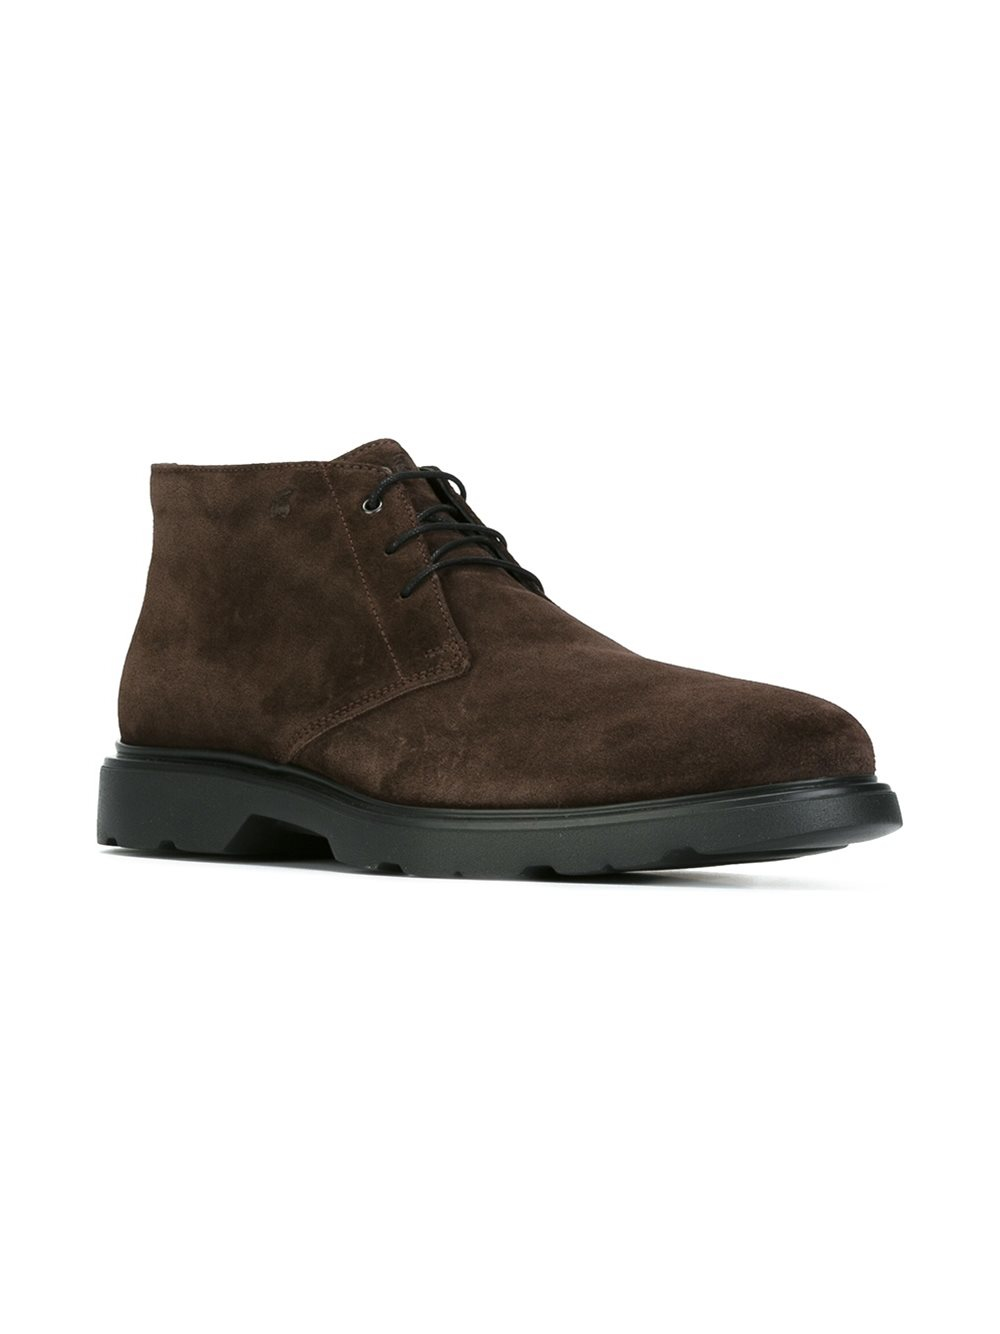 Hogan Route Ankle Boots In Brown For Men Lyst